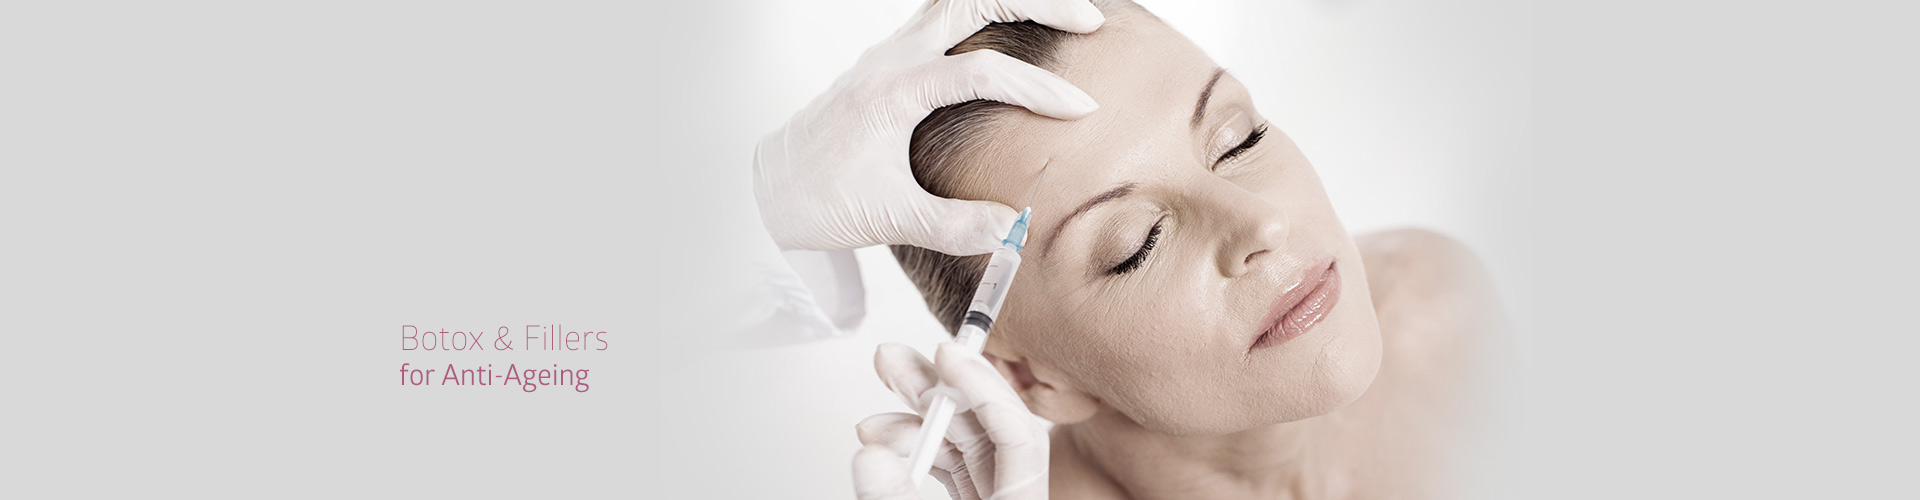 Botox-Fillers-for-Anti-Ageing